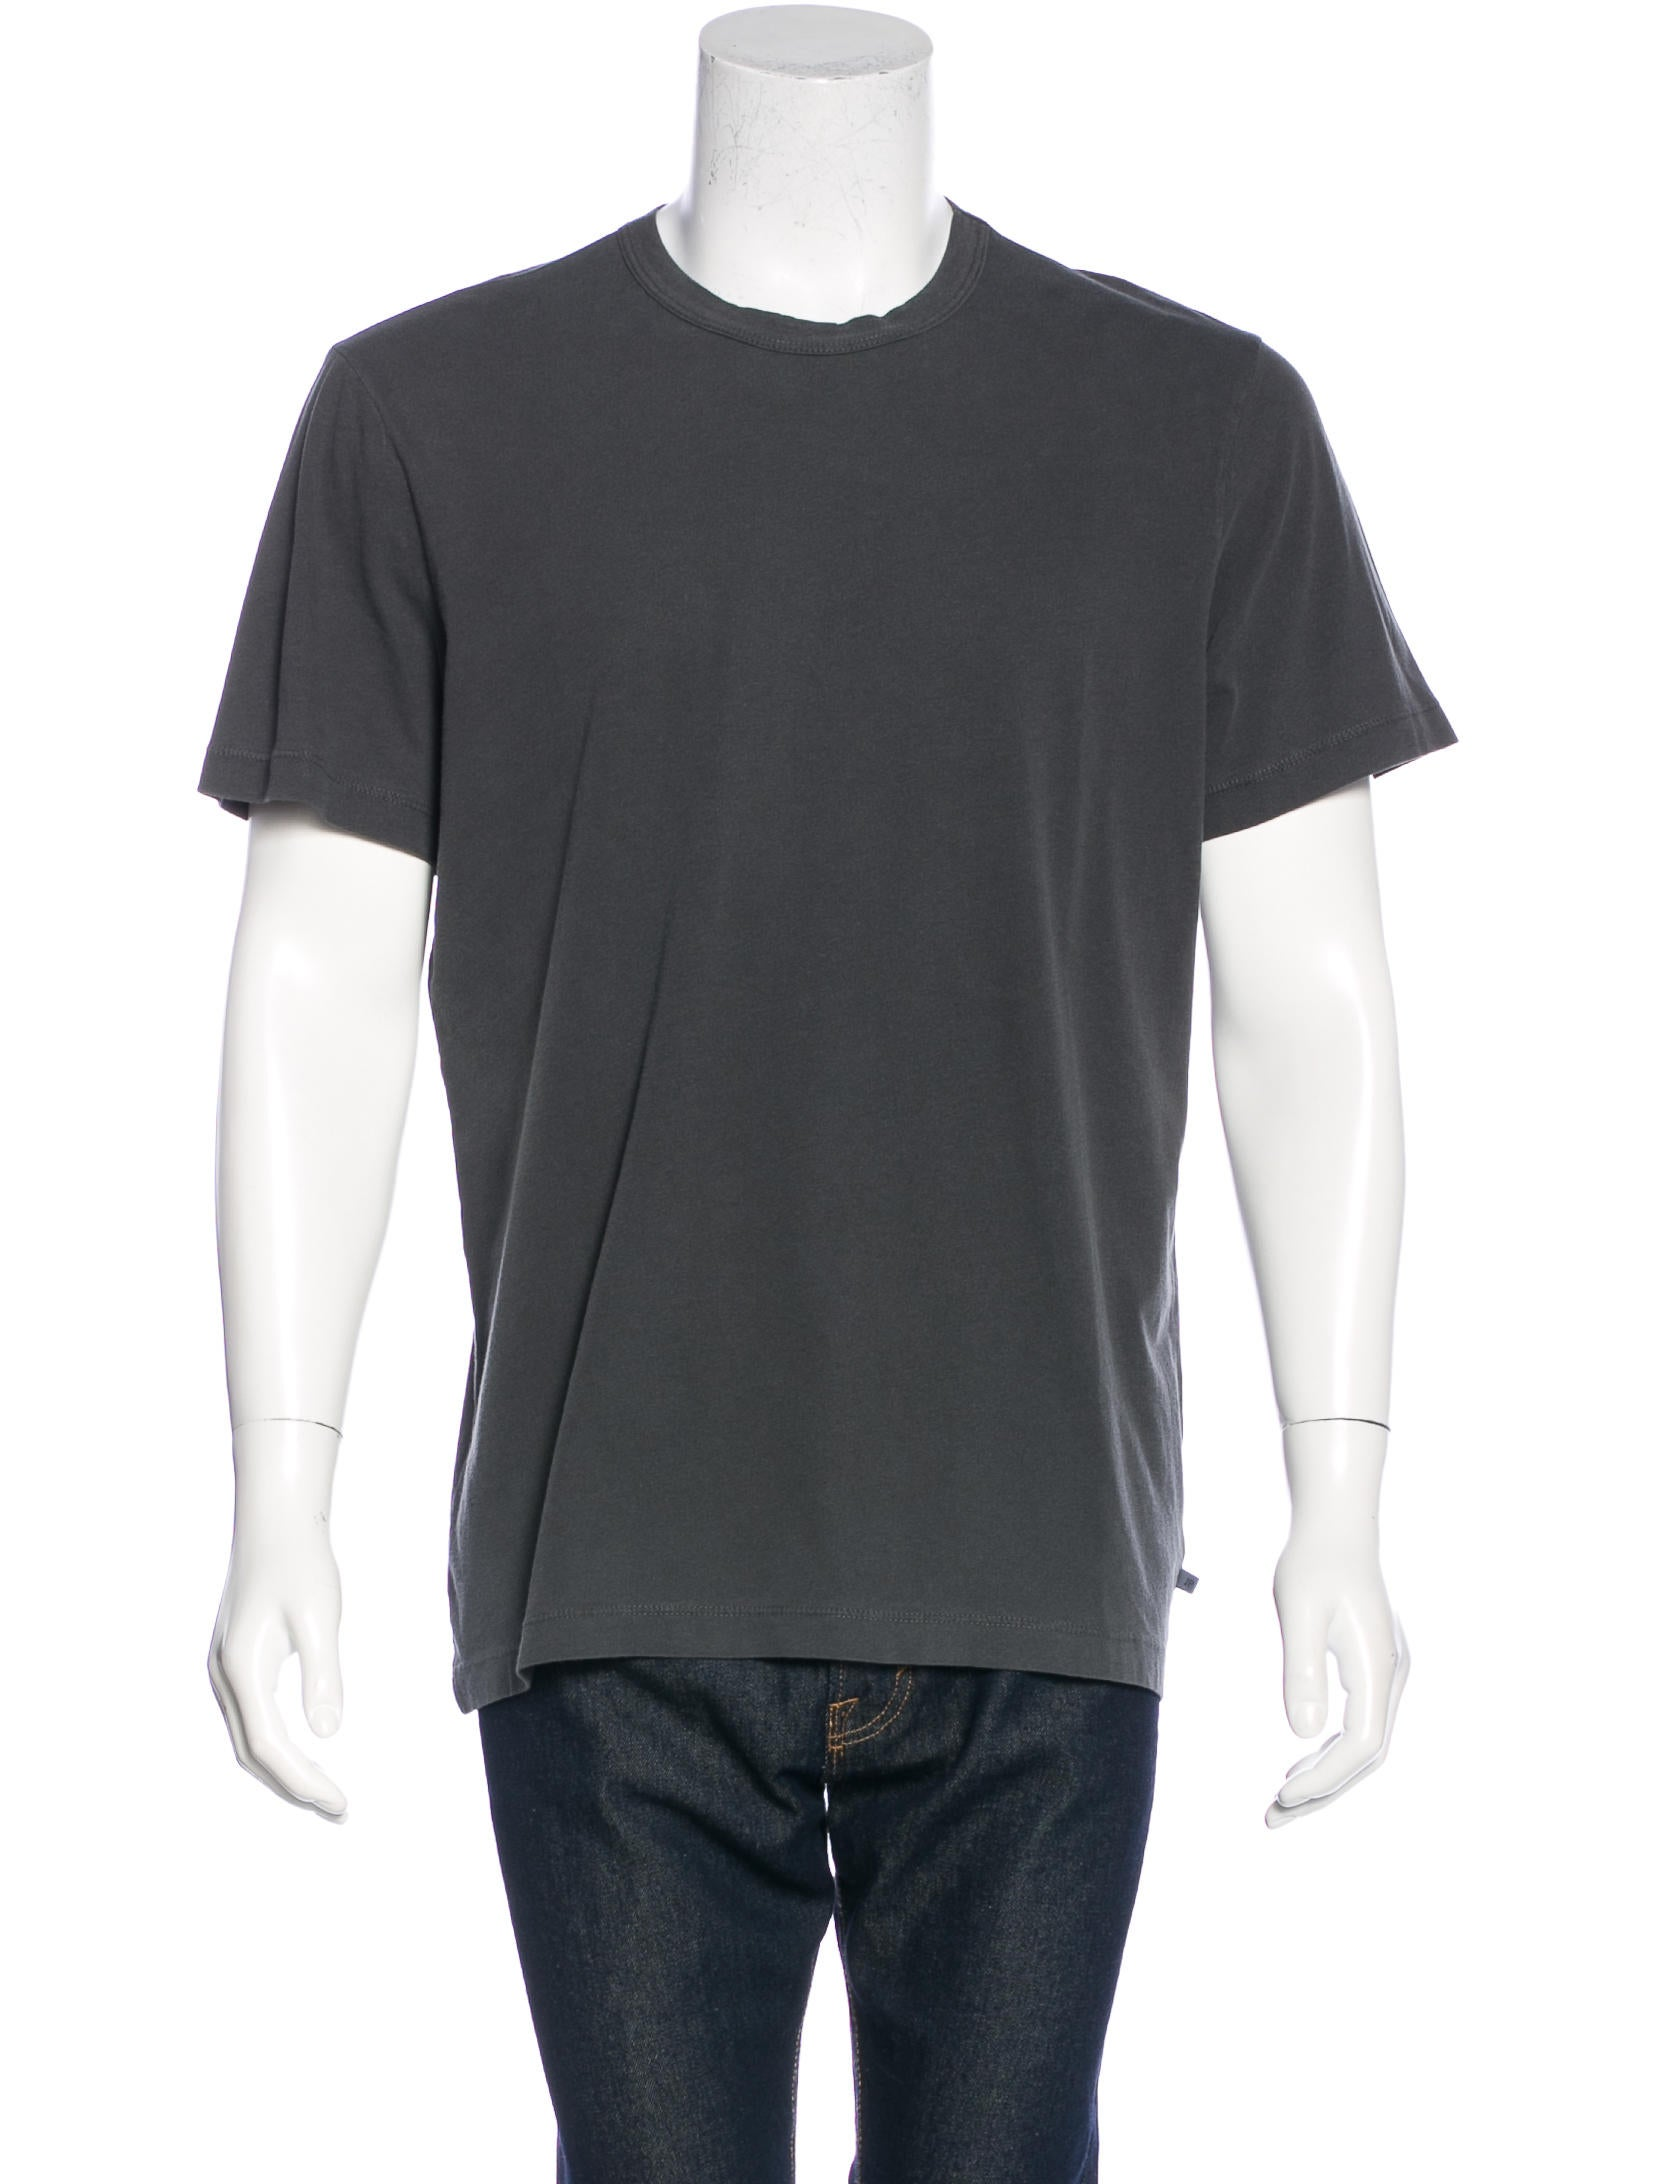 James perse 2 pack t shirt w tags clothing wjp20122 for James perse t shirts sale